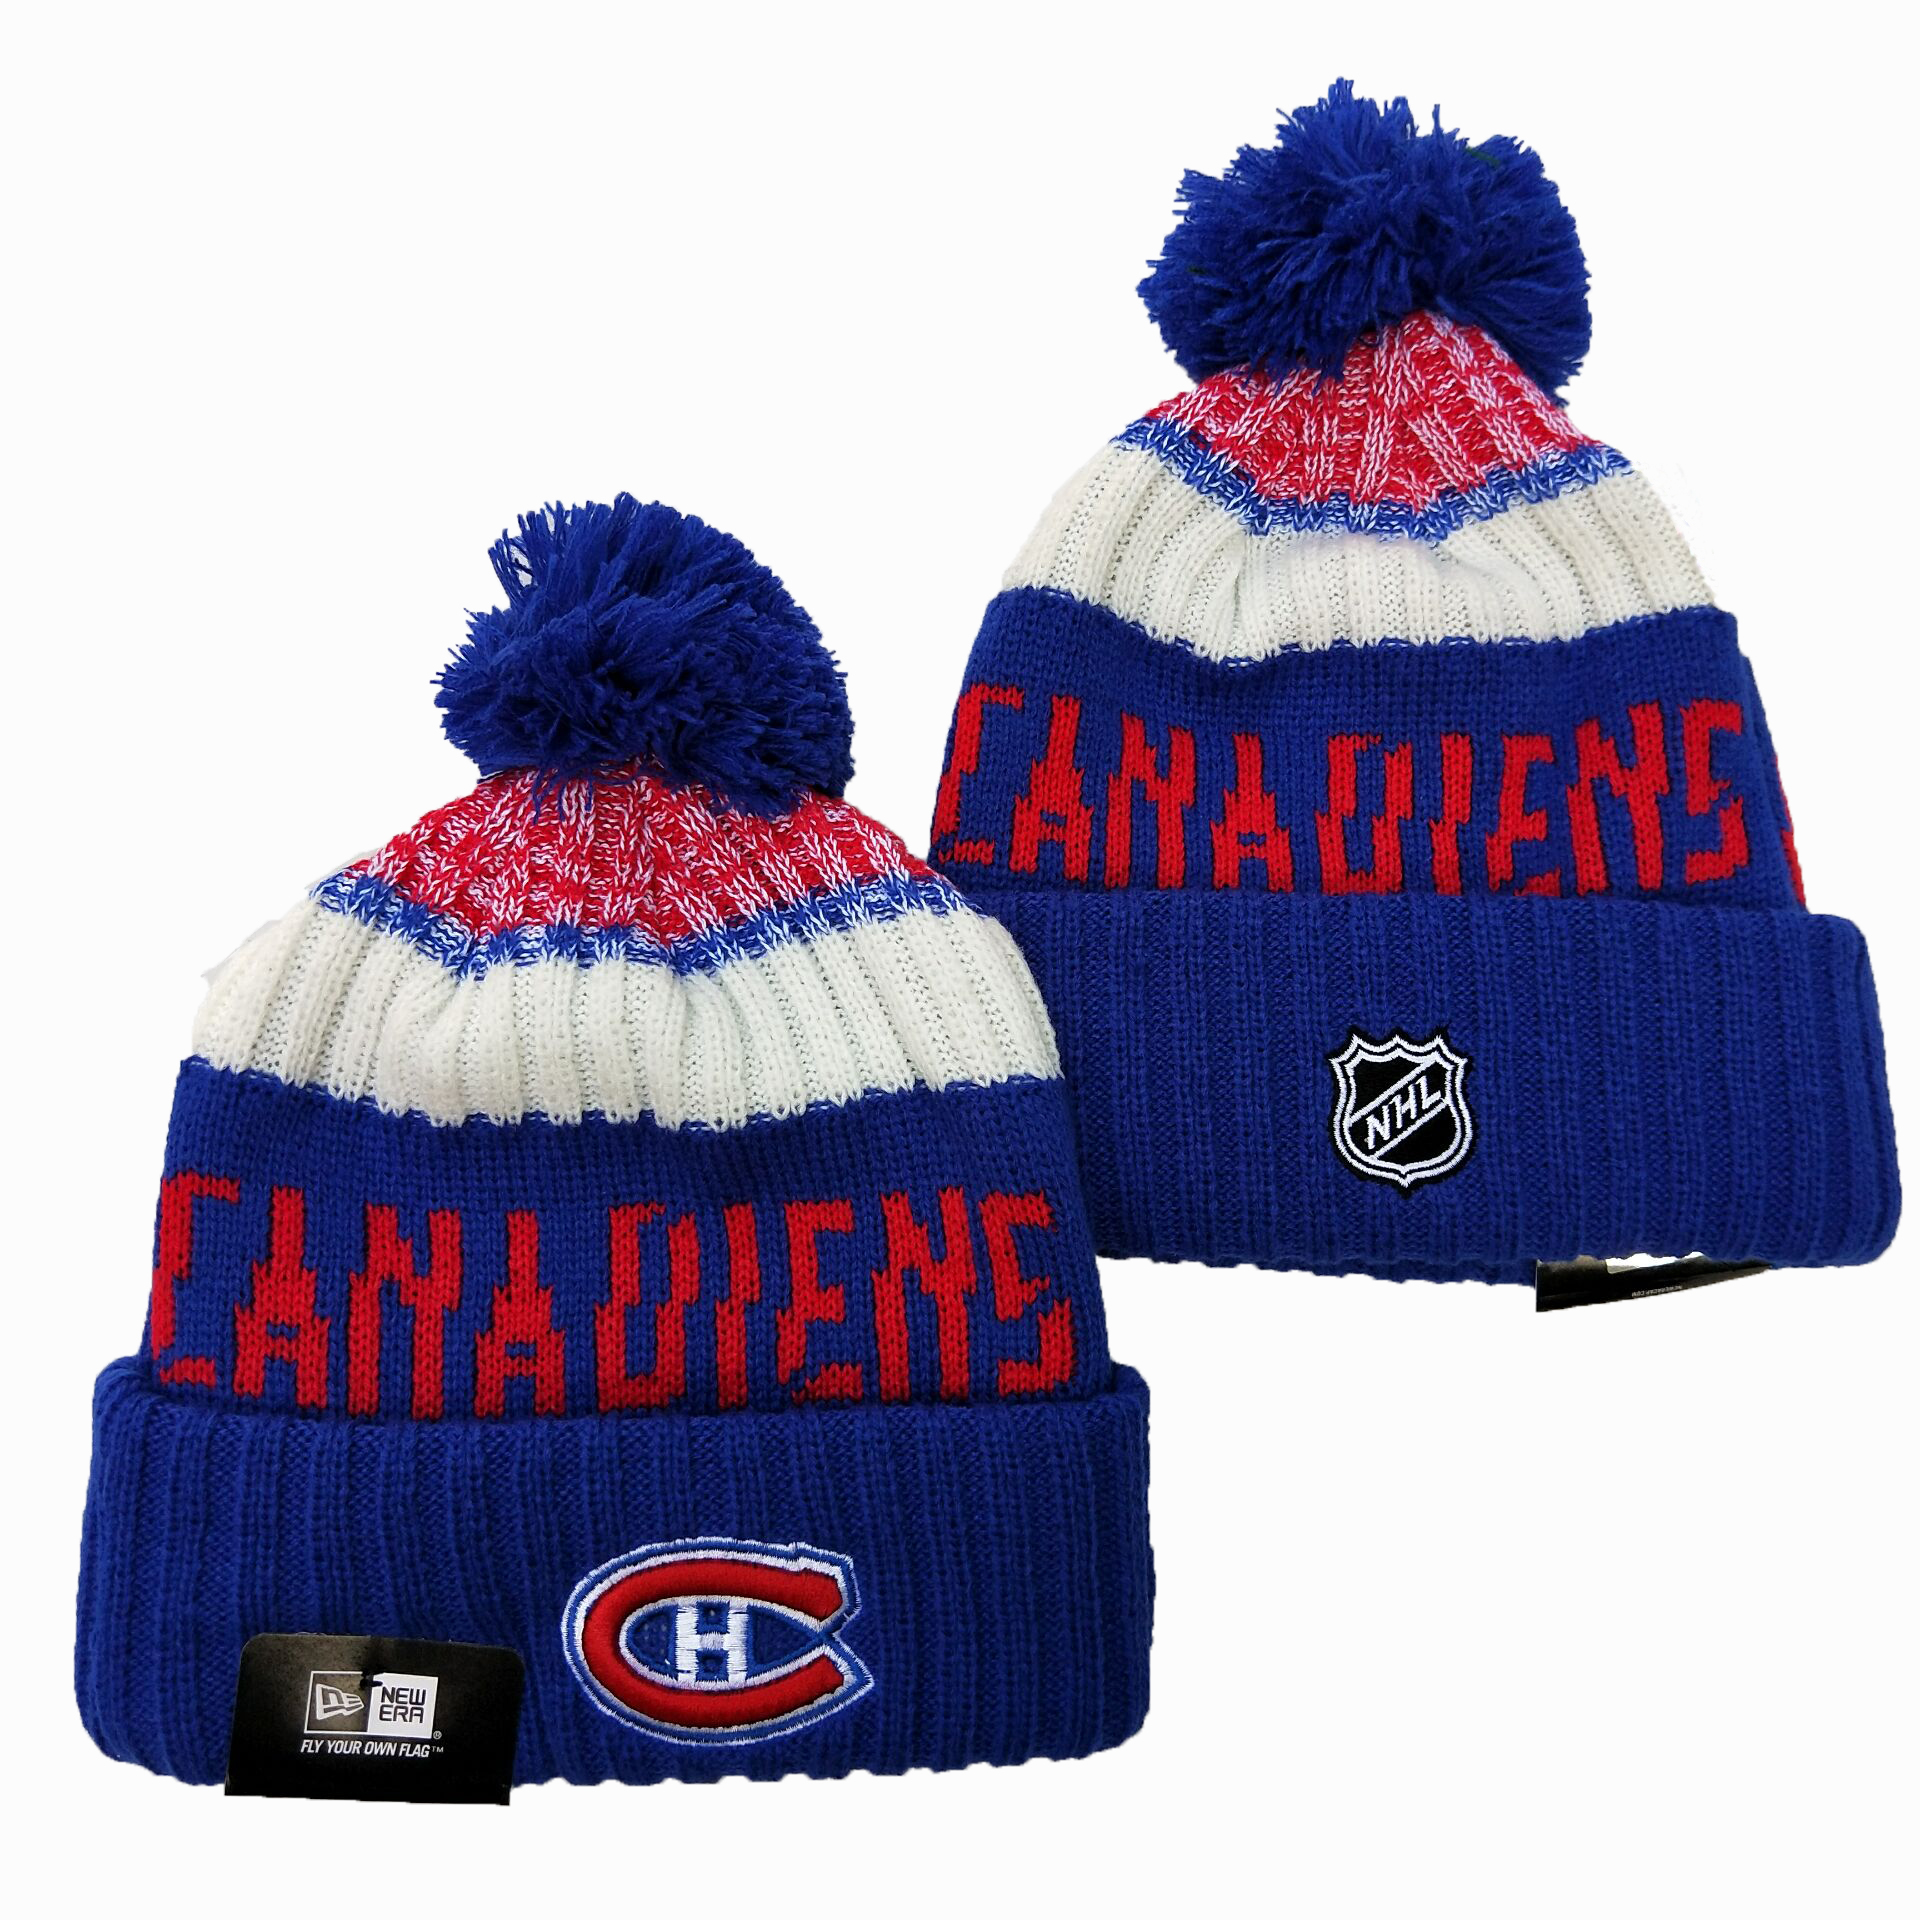 MONTREAL CANADIENS CAPS-YD1506